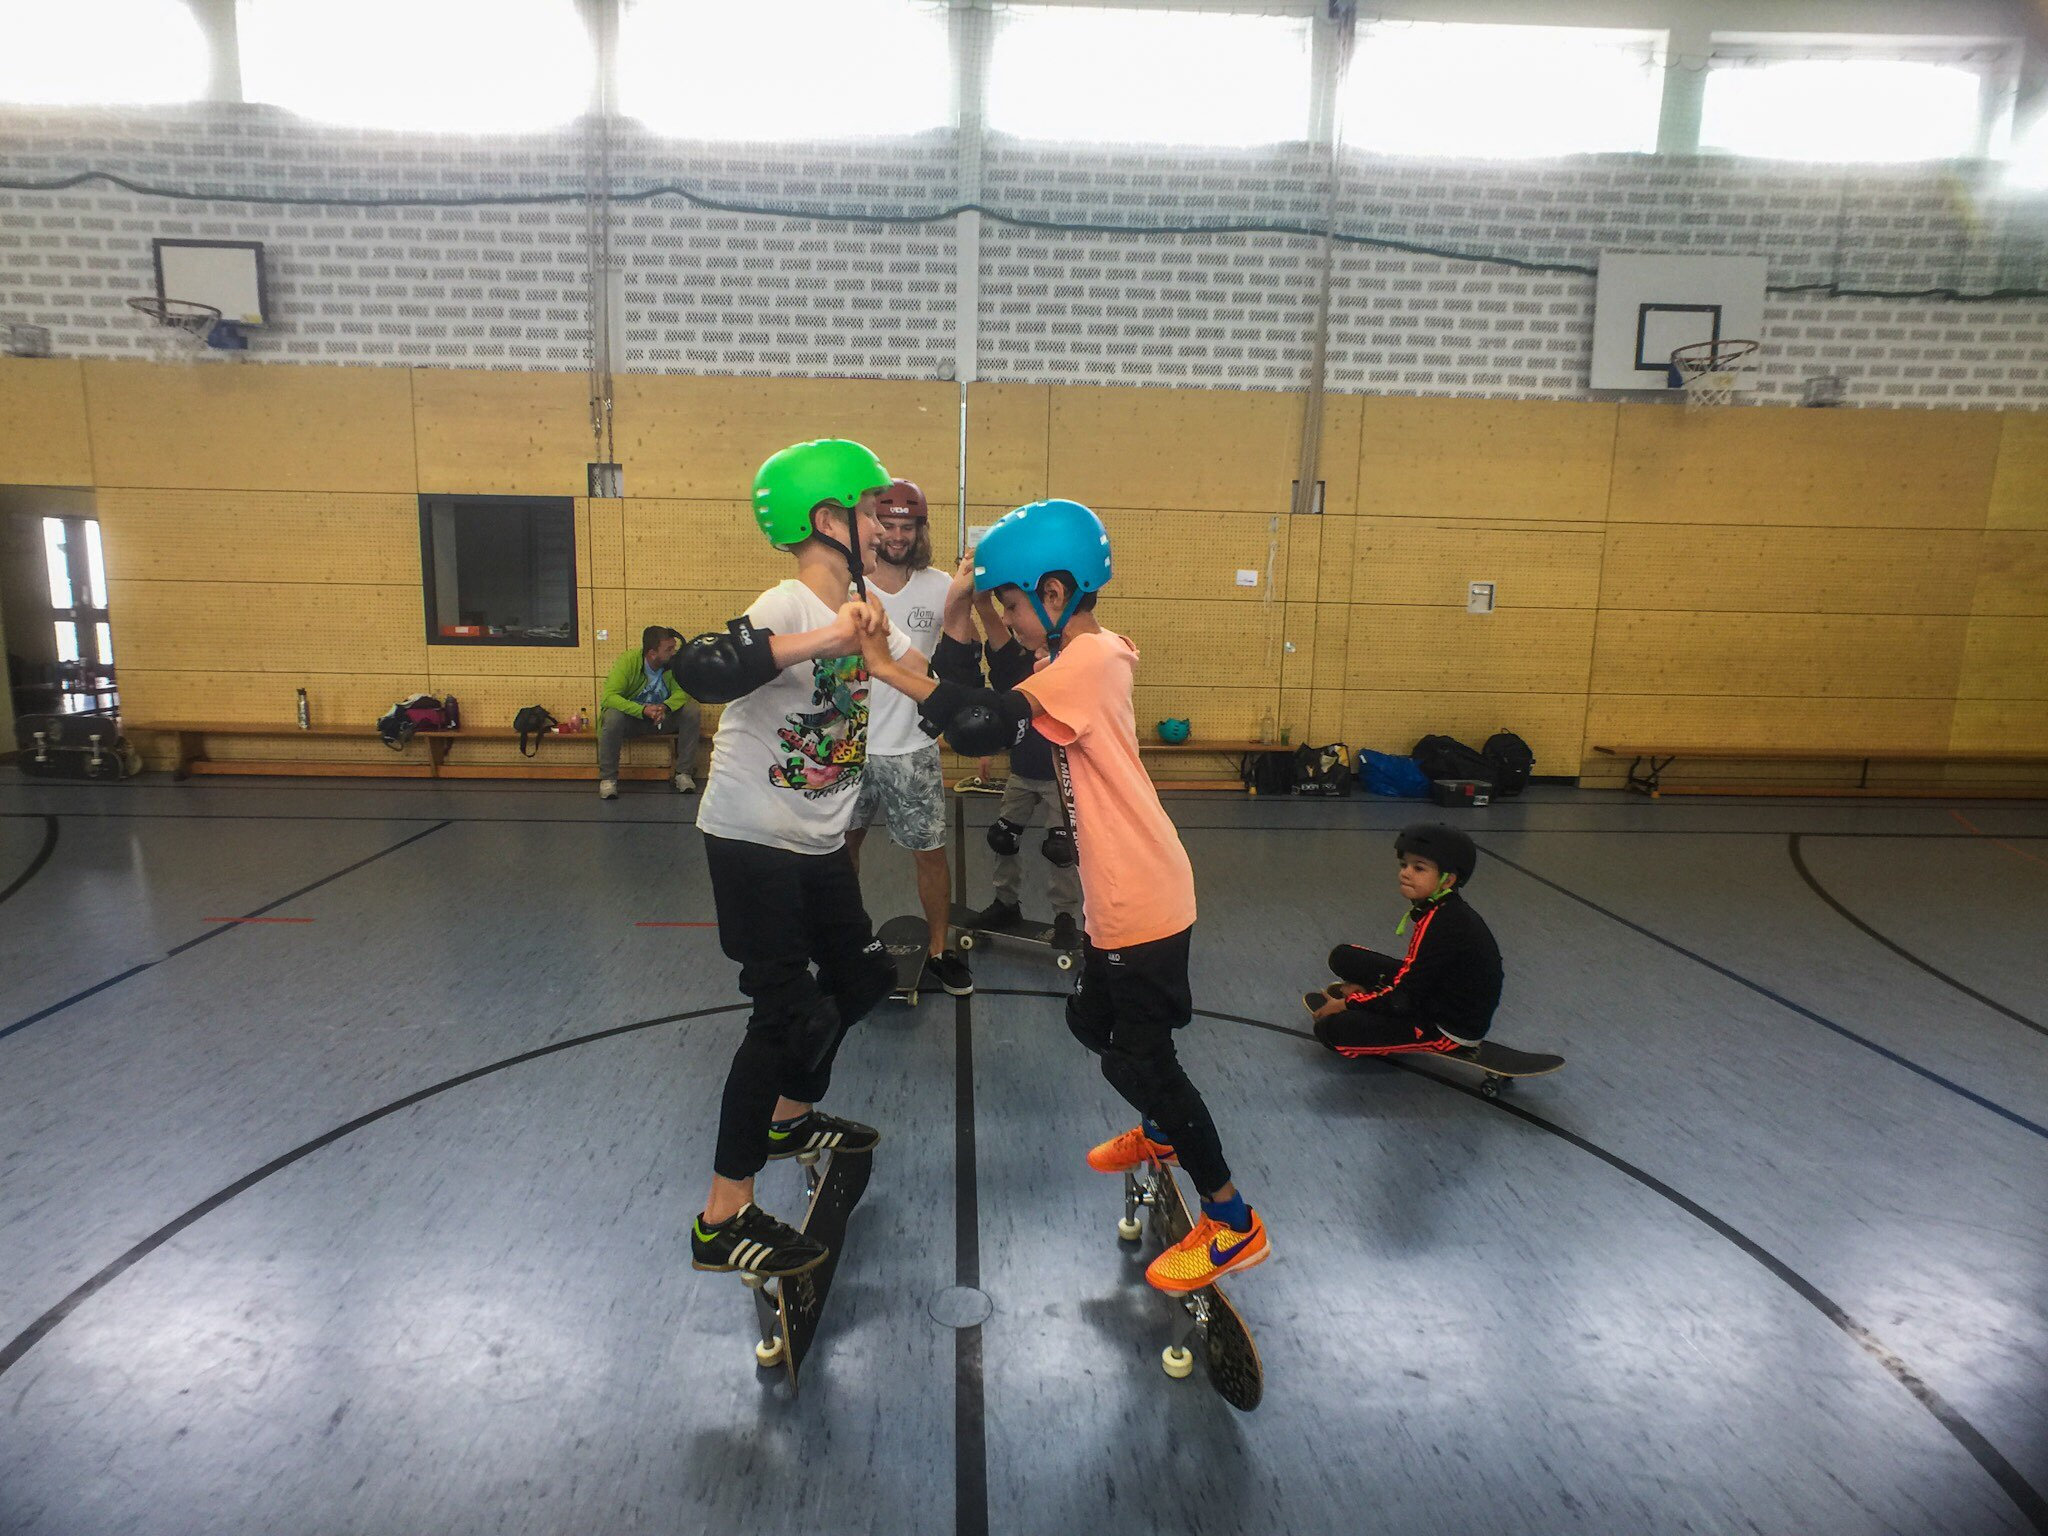 Skatkurs Erpfting Landsberg am Lech Tom Cat Skate Kurse 3 .JPG